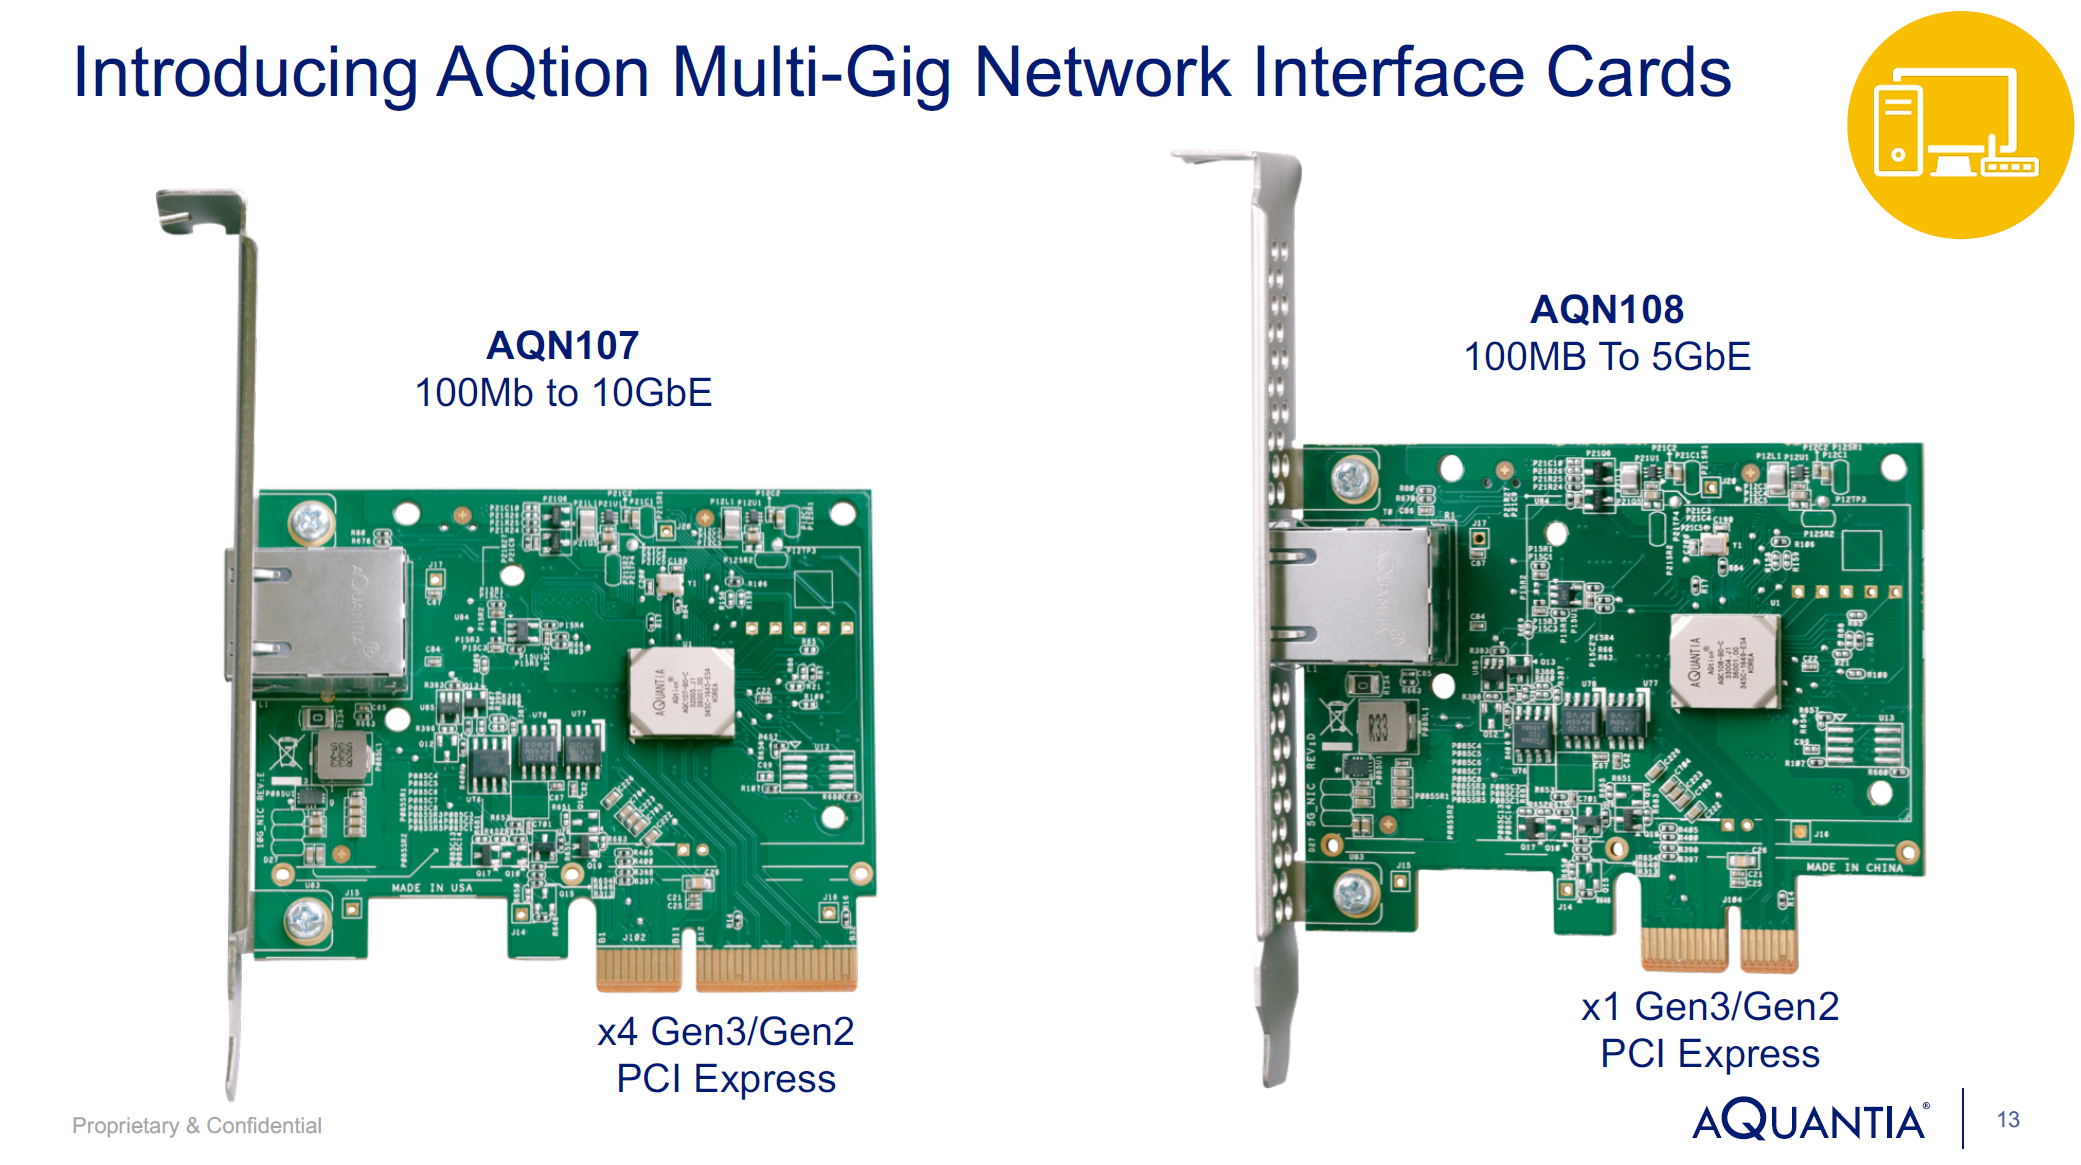 Aquantia Launch Aqtion 5g 25g 1g Multi Gigabit Ethernet Cards Nics Circuit Diagram Of Pc Joystick Interface Drivers For Both Will Be Available The Windows 7 8 81 10 Also As Part Update Solution Well Varieties Linux 310 312